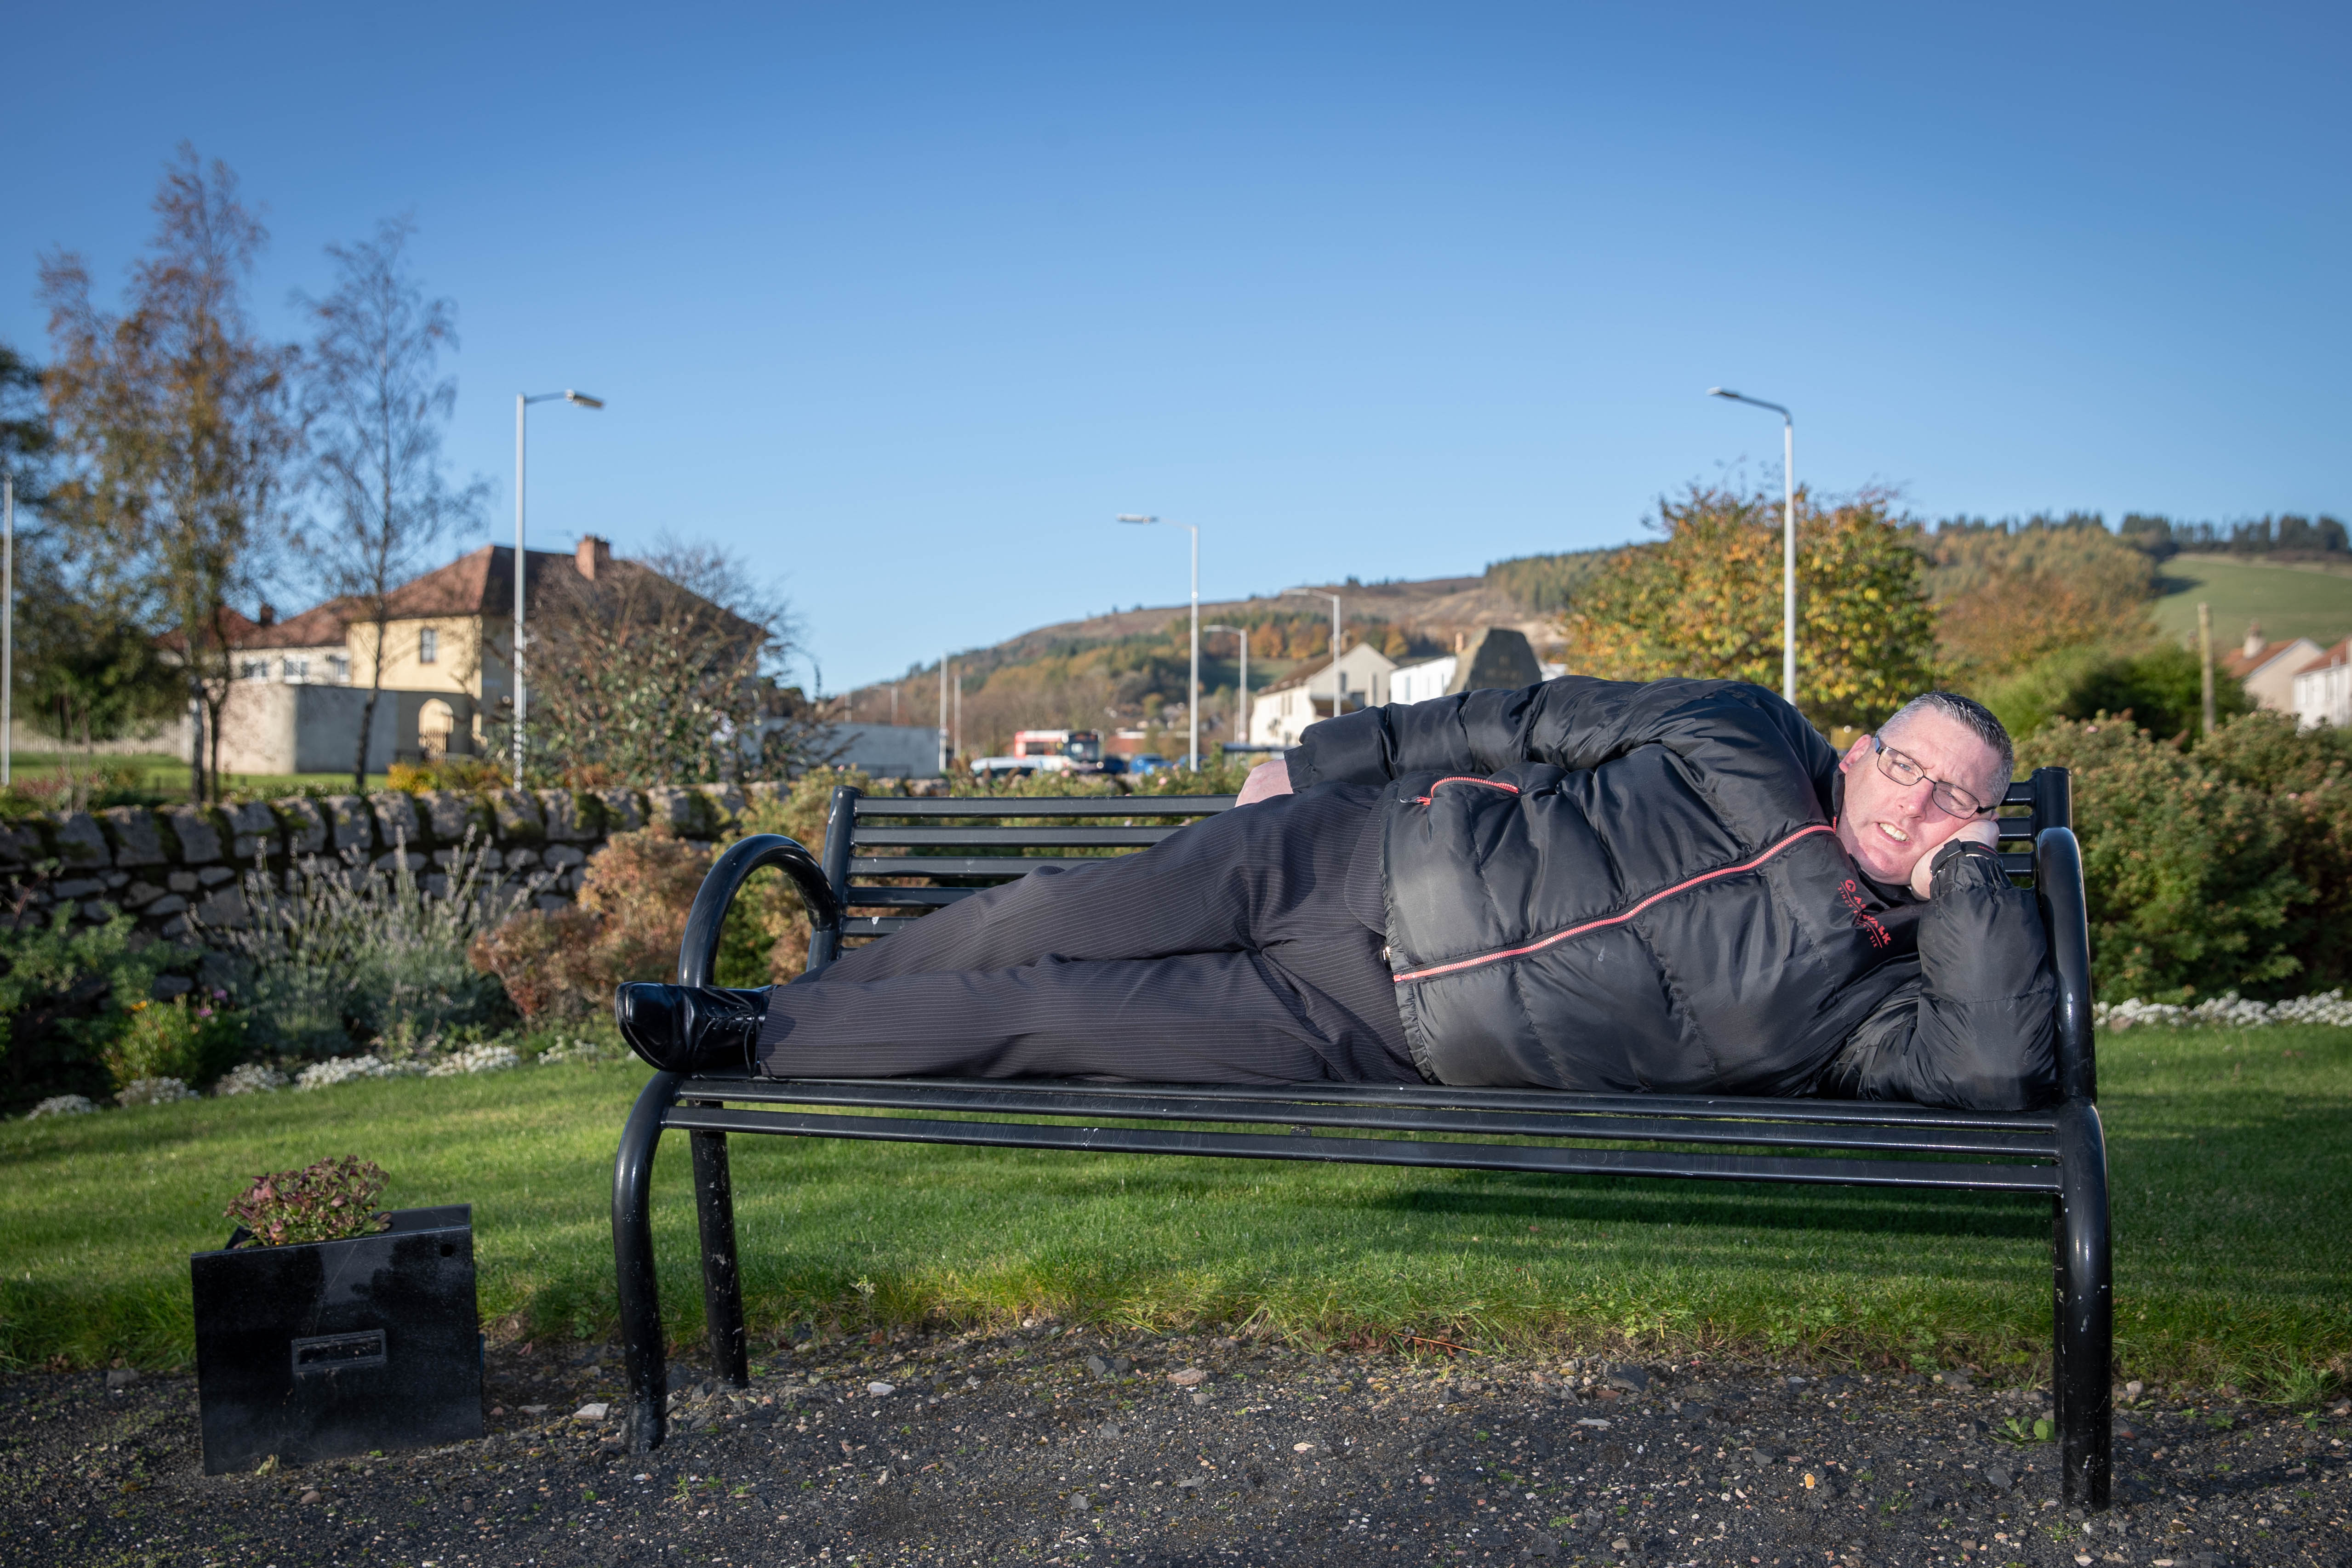 Funeral director Harry Webster at Benarty Miners Memorial Garden where Harry is going to be sleeping rough for 24 hours in December to raise funds for the Salvation Army in Lochgelly